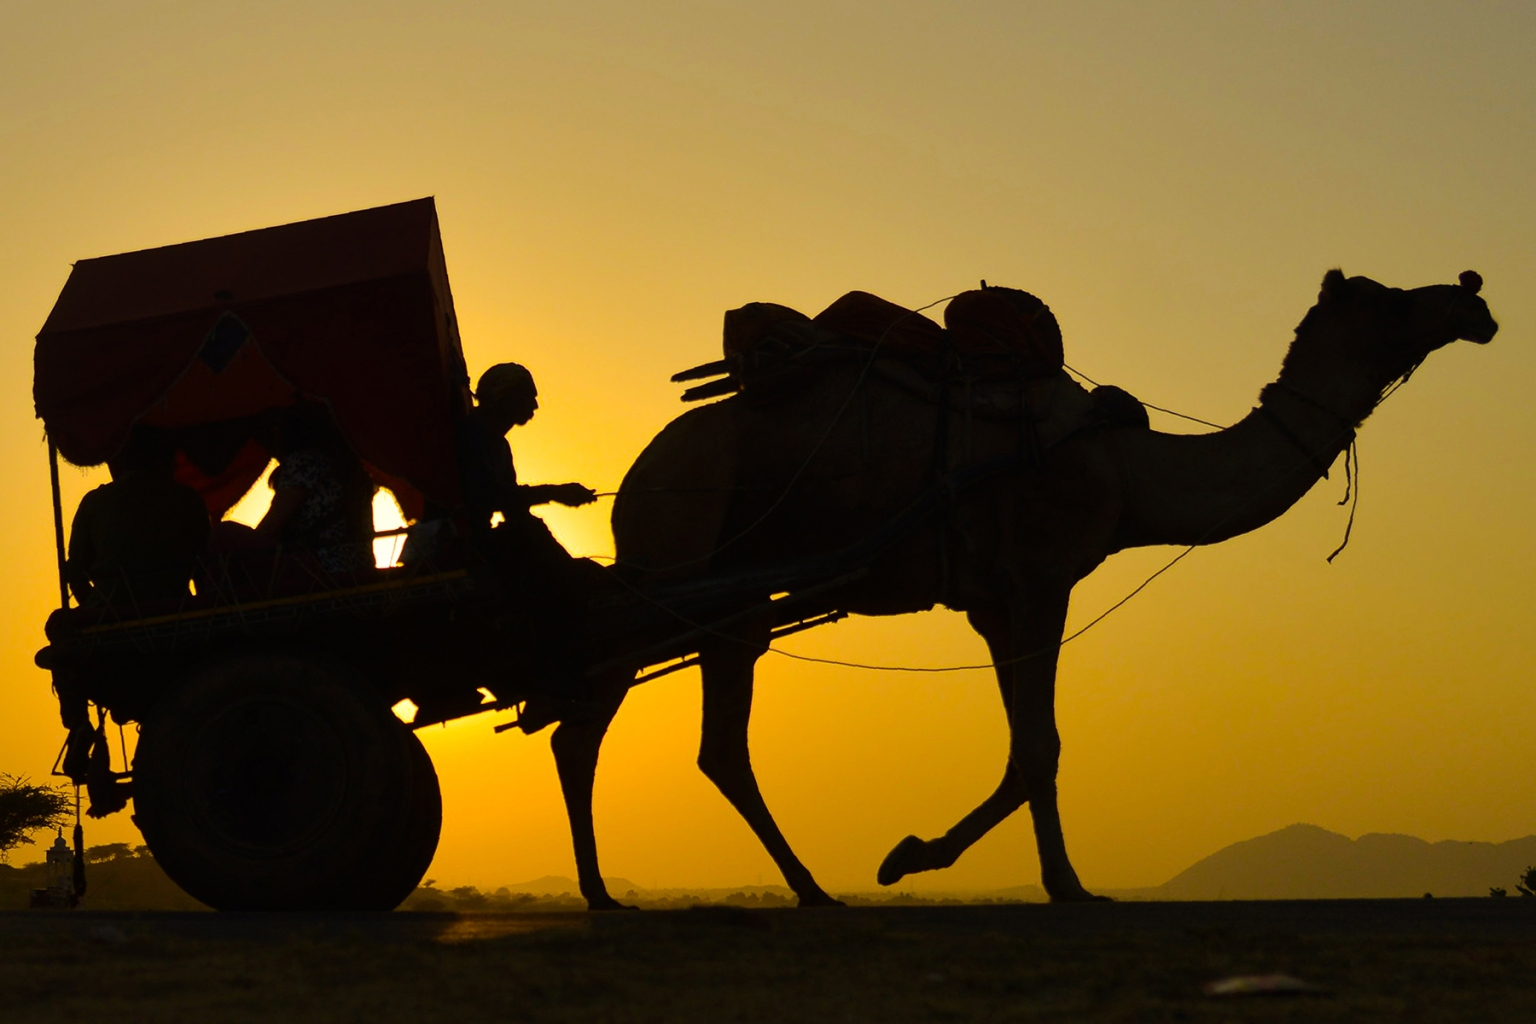 An Indian man rides on a camel cart during the Pushkar Camel Fair in the western state of Rajasthan on Nov. 12. Thousands from the region come to the five-day event where livestock, mainly camels, are traded at one of the world's largest camel fairs. SHAUKAT AHMED/AFP/Getty Images